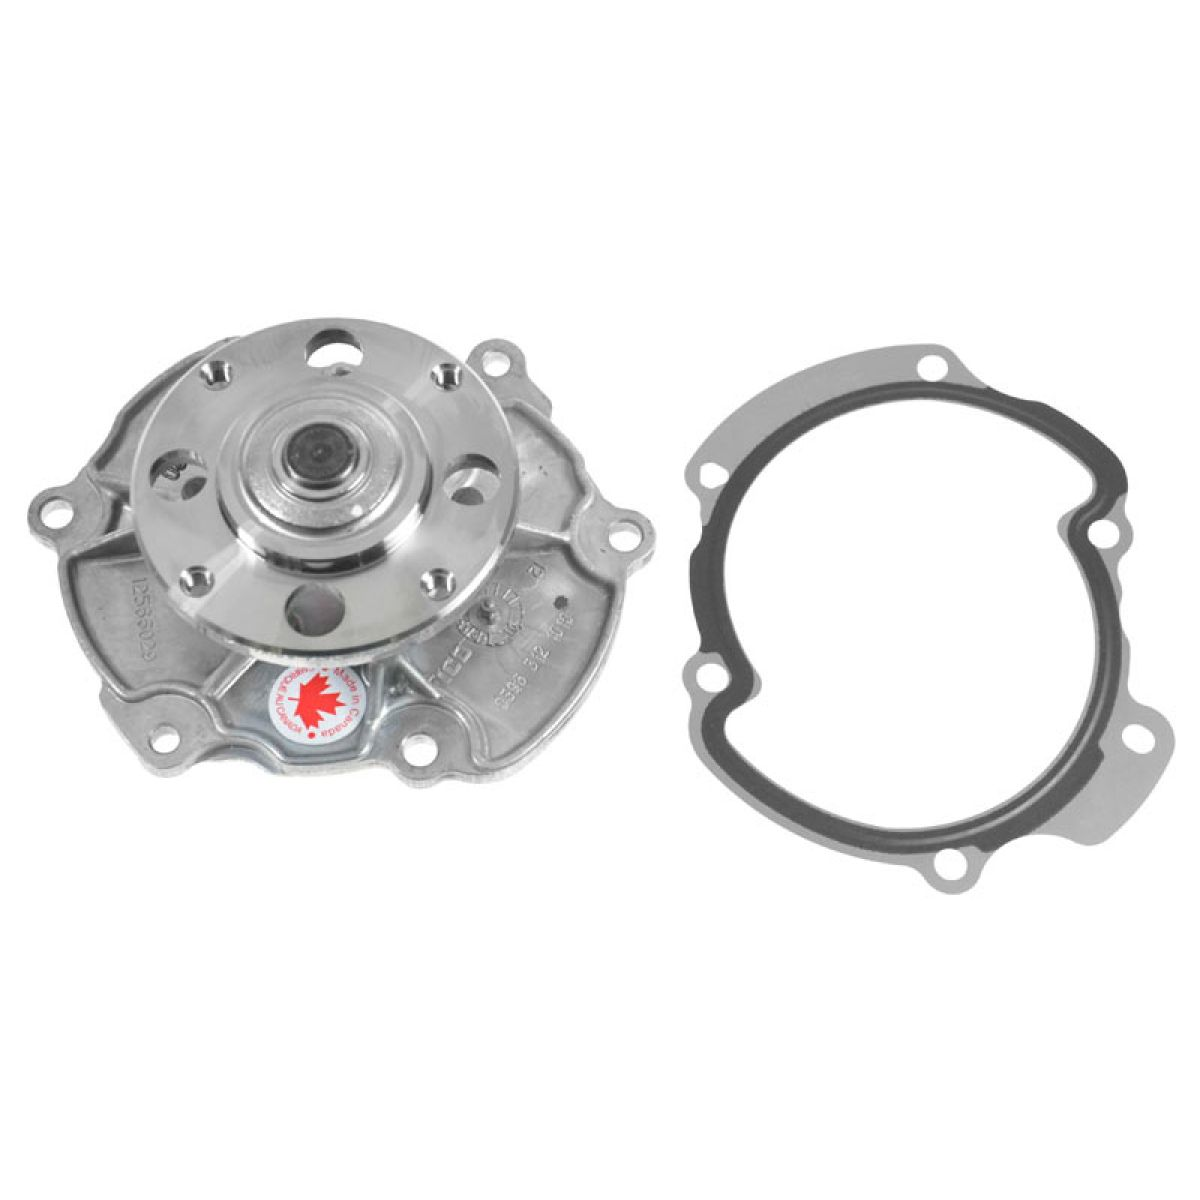 Engine Water Pump Fit 2010 BUICK LACROSSE V6 3.0L /& 3.6L